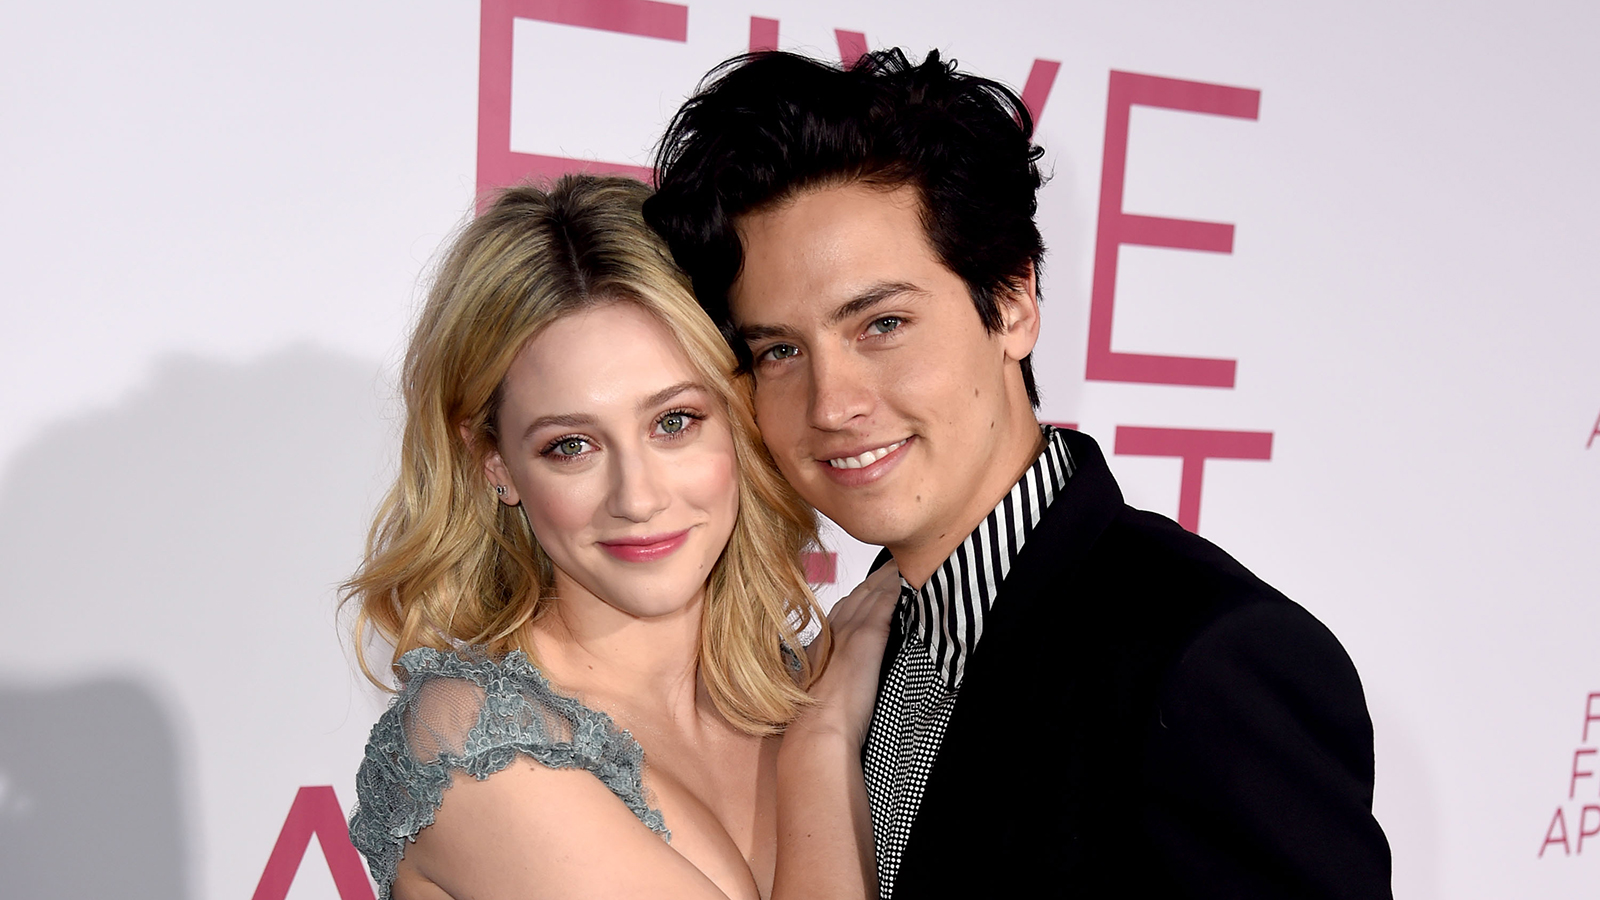 See Cole Sprouse and Lili Reinhart's Cutest IRL Moments Together Before Split